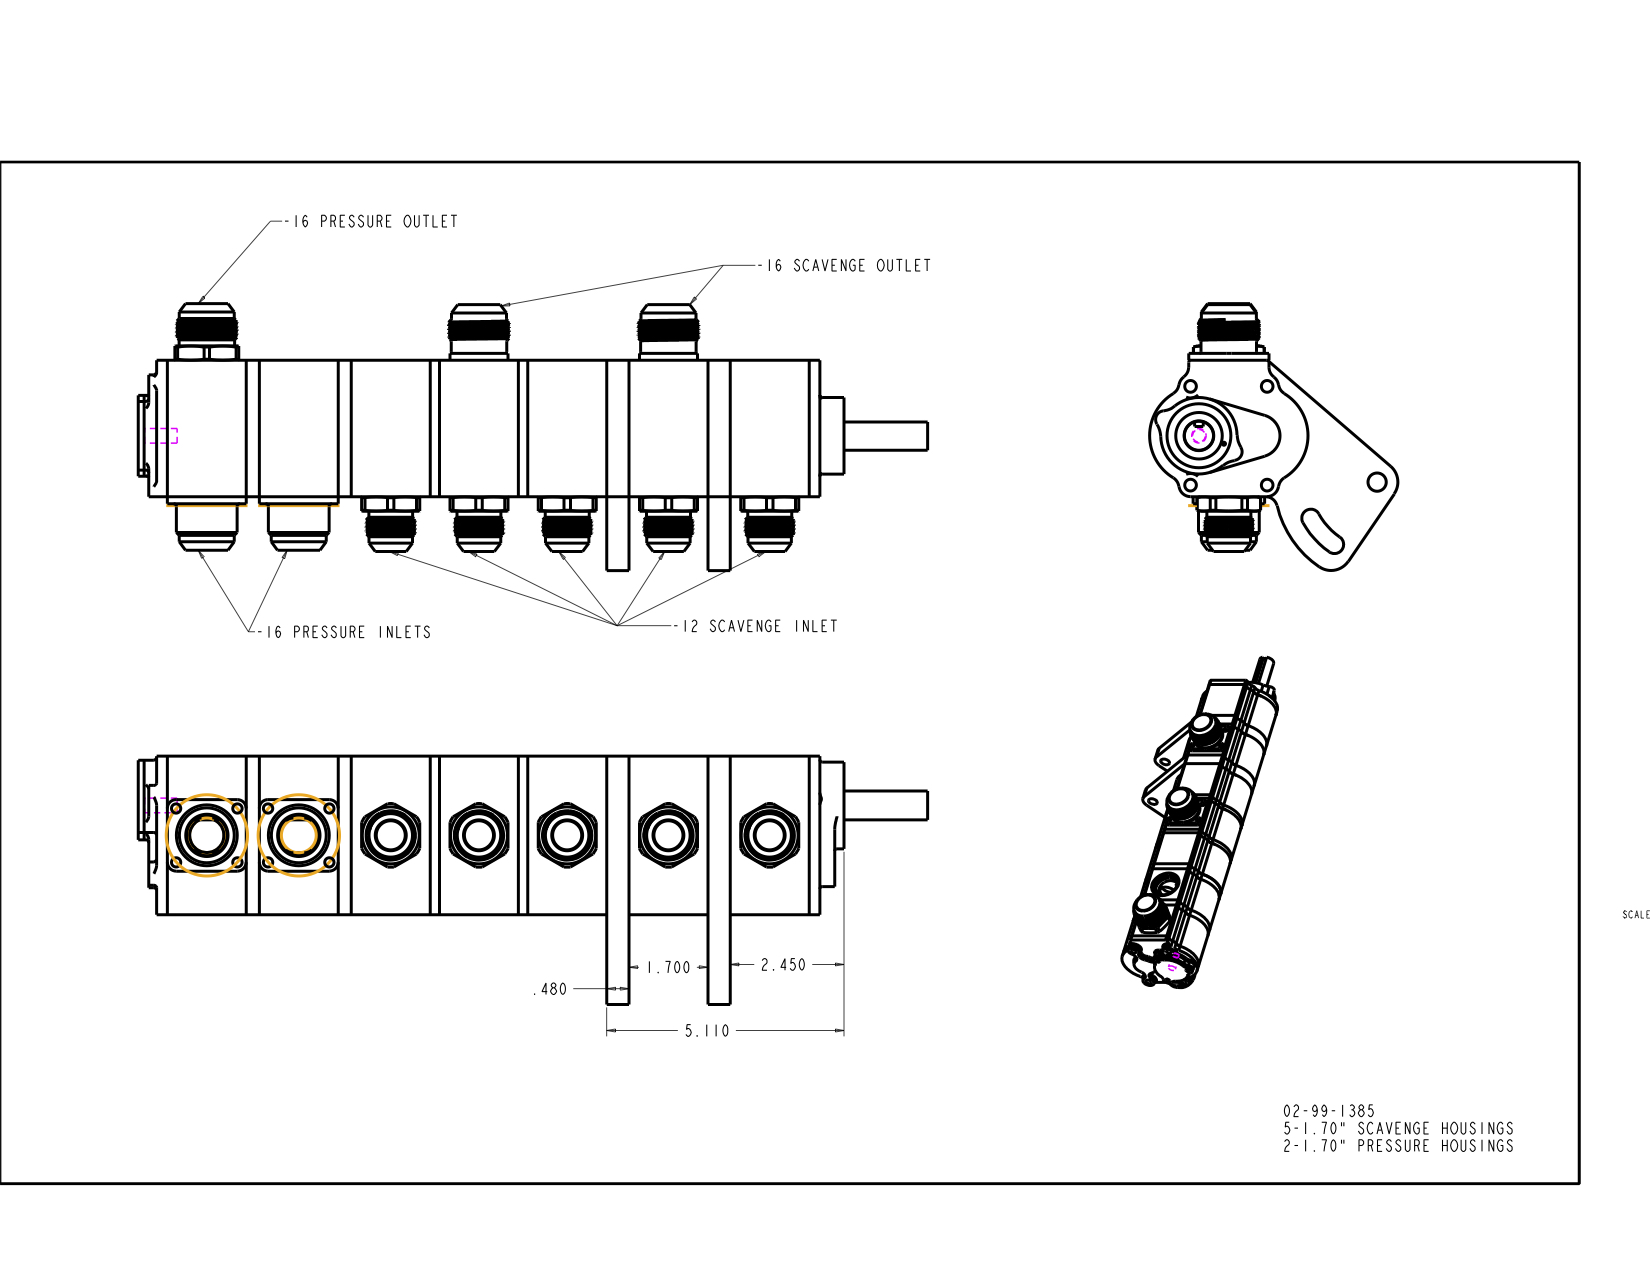 jaguar xk8 fuse box diagram 99  jaguar  auto wiring diagram